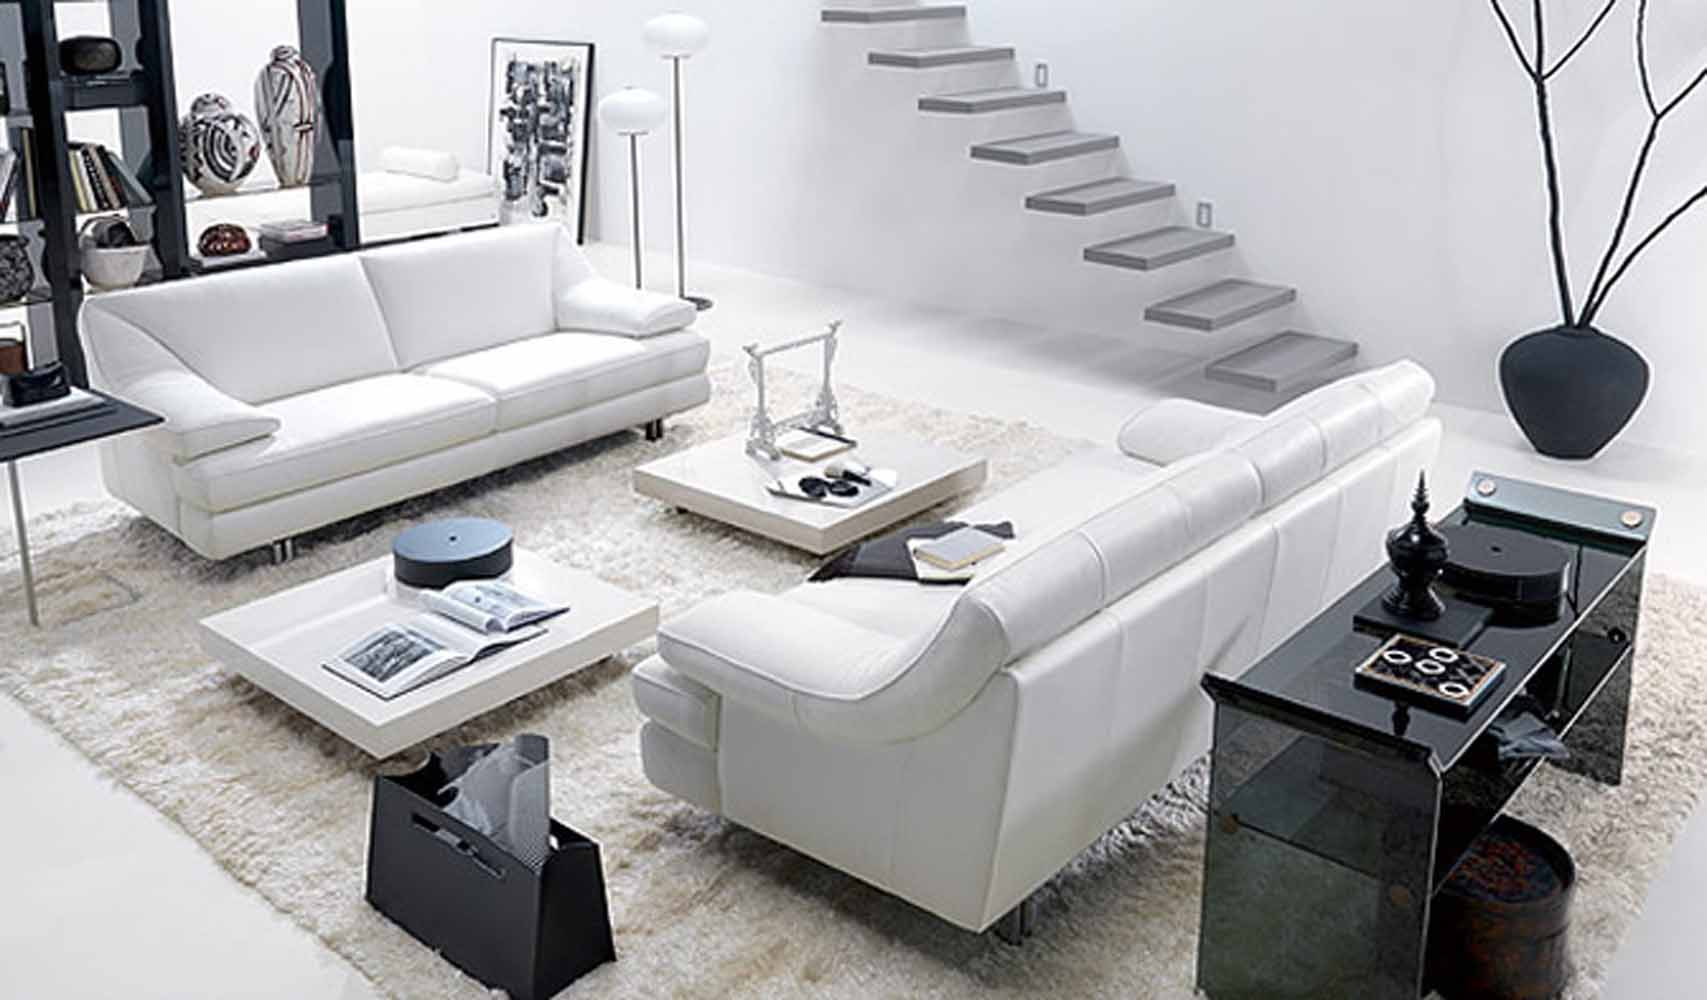 17 Inspiring Wonderful Black And White Contemporary Interior Designs Homesthetics Inspiring Ideas For Your Home